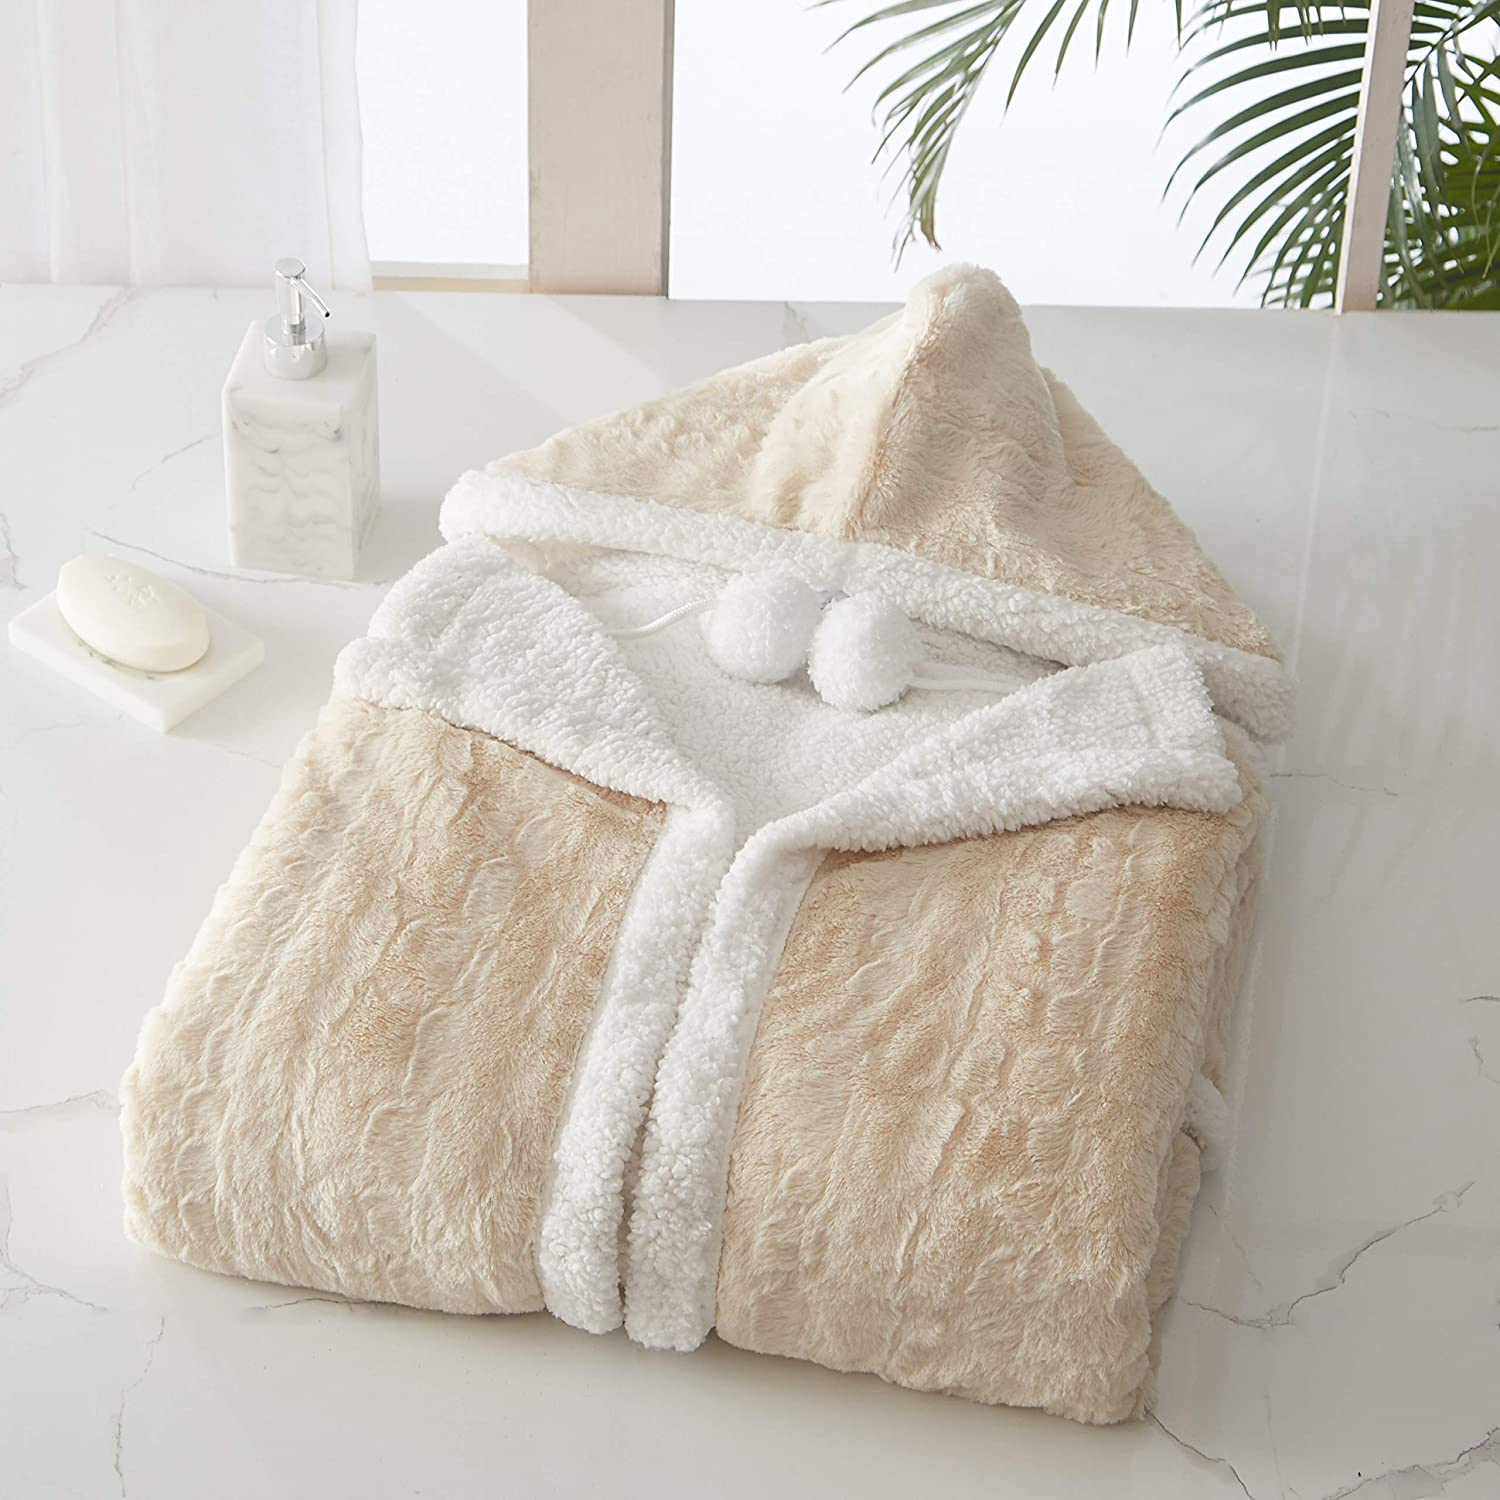 """Chic Home Lansing Snuggle Hoodie Animal Pattern Robe Cozy Super Soft Ultra Plush Micromink Coral Fleece Sherpa Lined Wearable Blanket with 2 Pockets Hood Drawstring Closure, 51"""" x 71"""""""